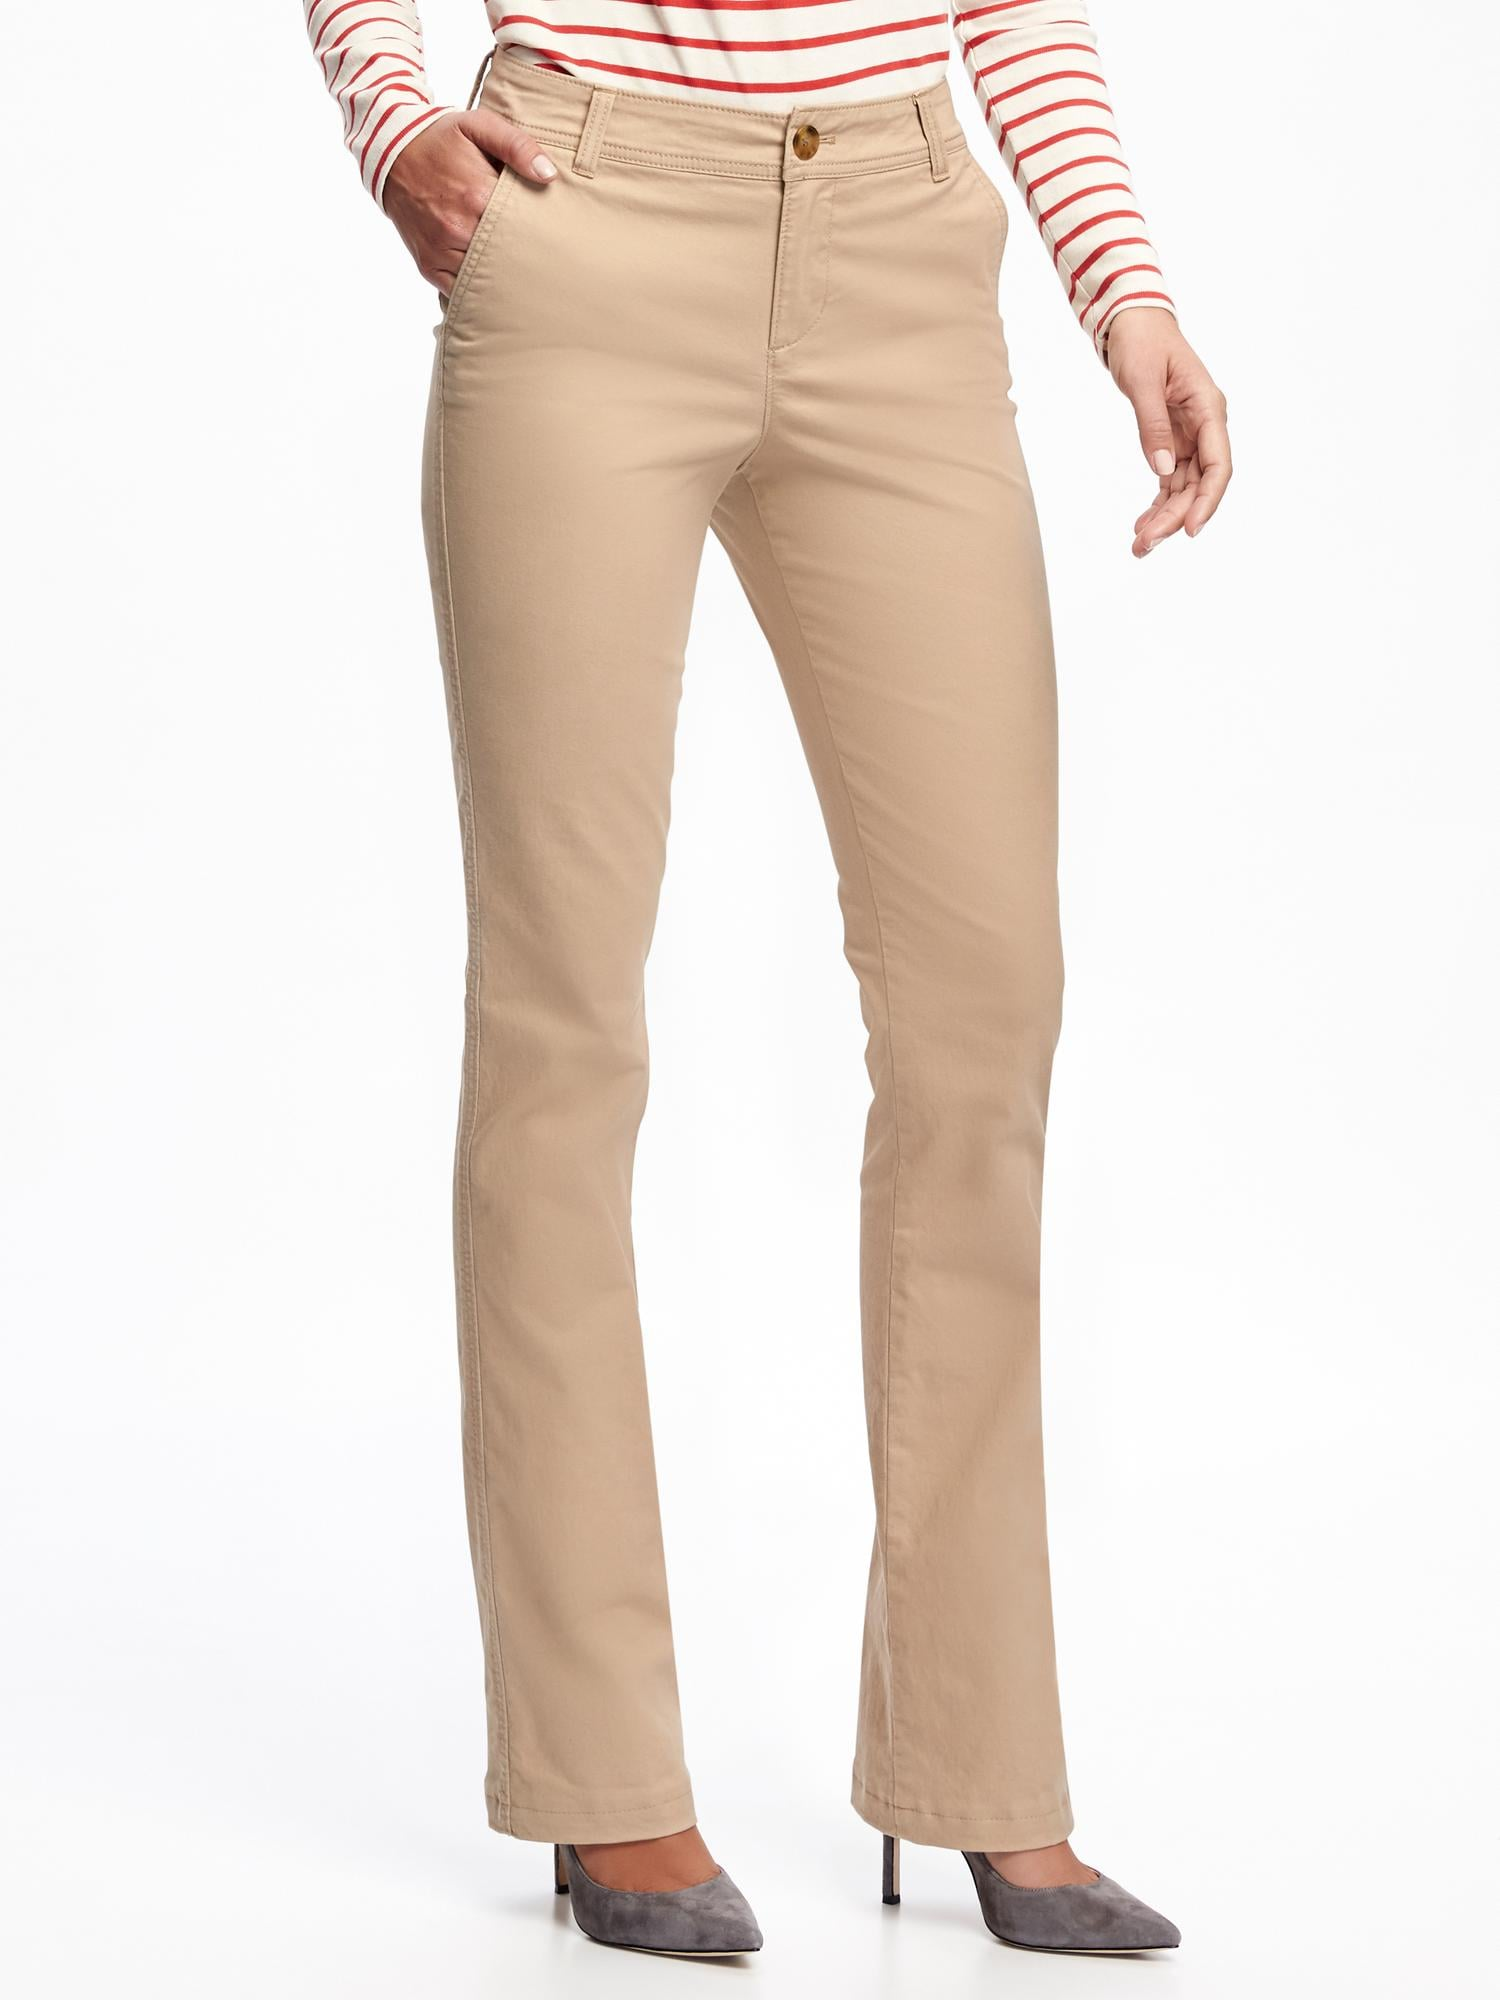 Gap boot cut khakis